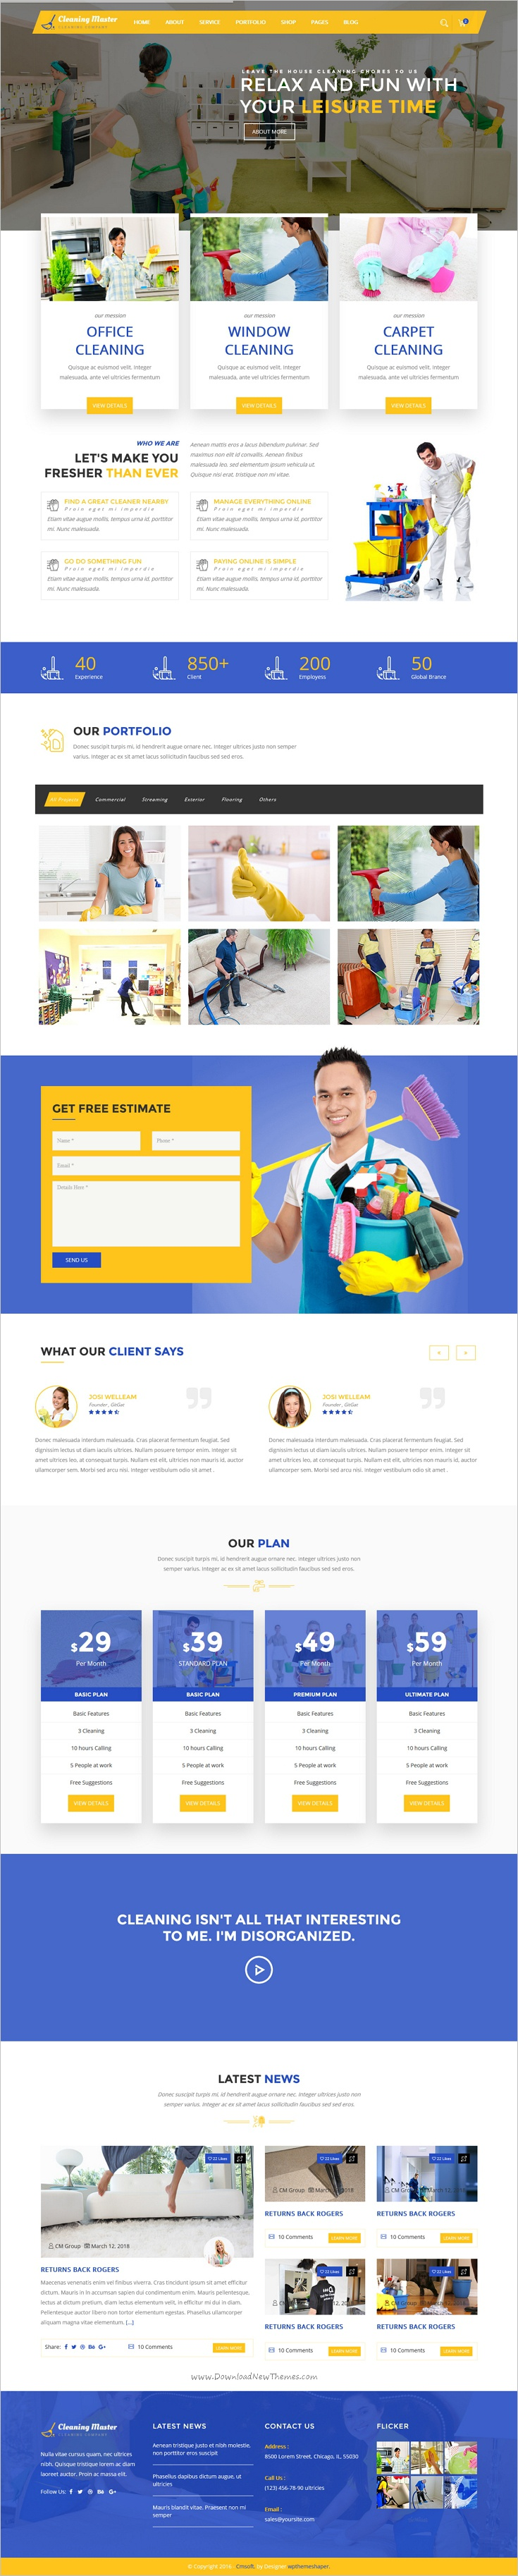 Clening master cleaning company html5 template pinterest clening master is beautifully design responsive 3in1 html bootstrap template for cleaning service company website download now cheaphphosting Choice Image